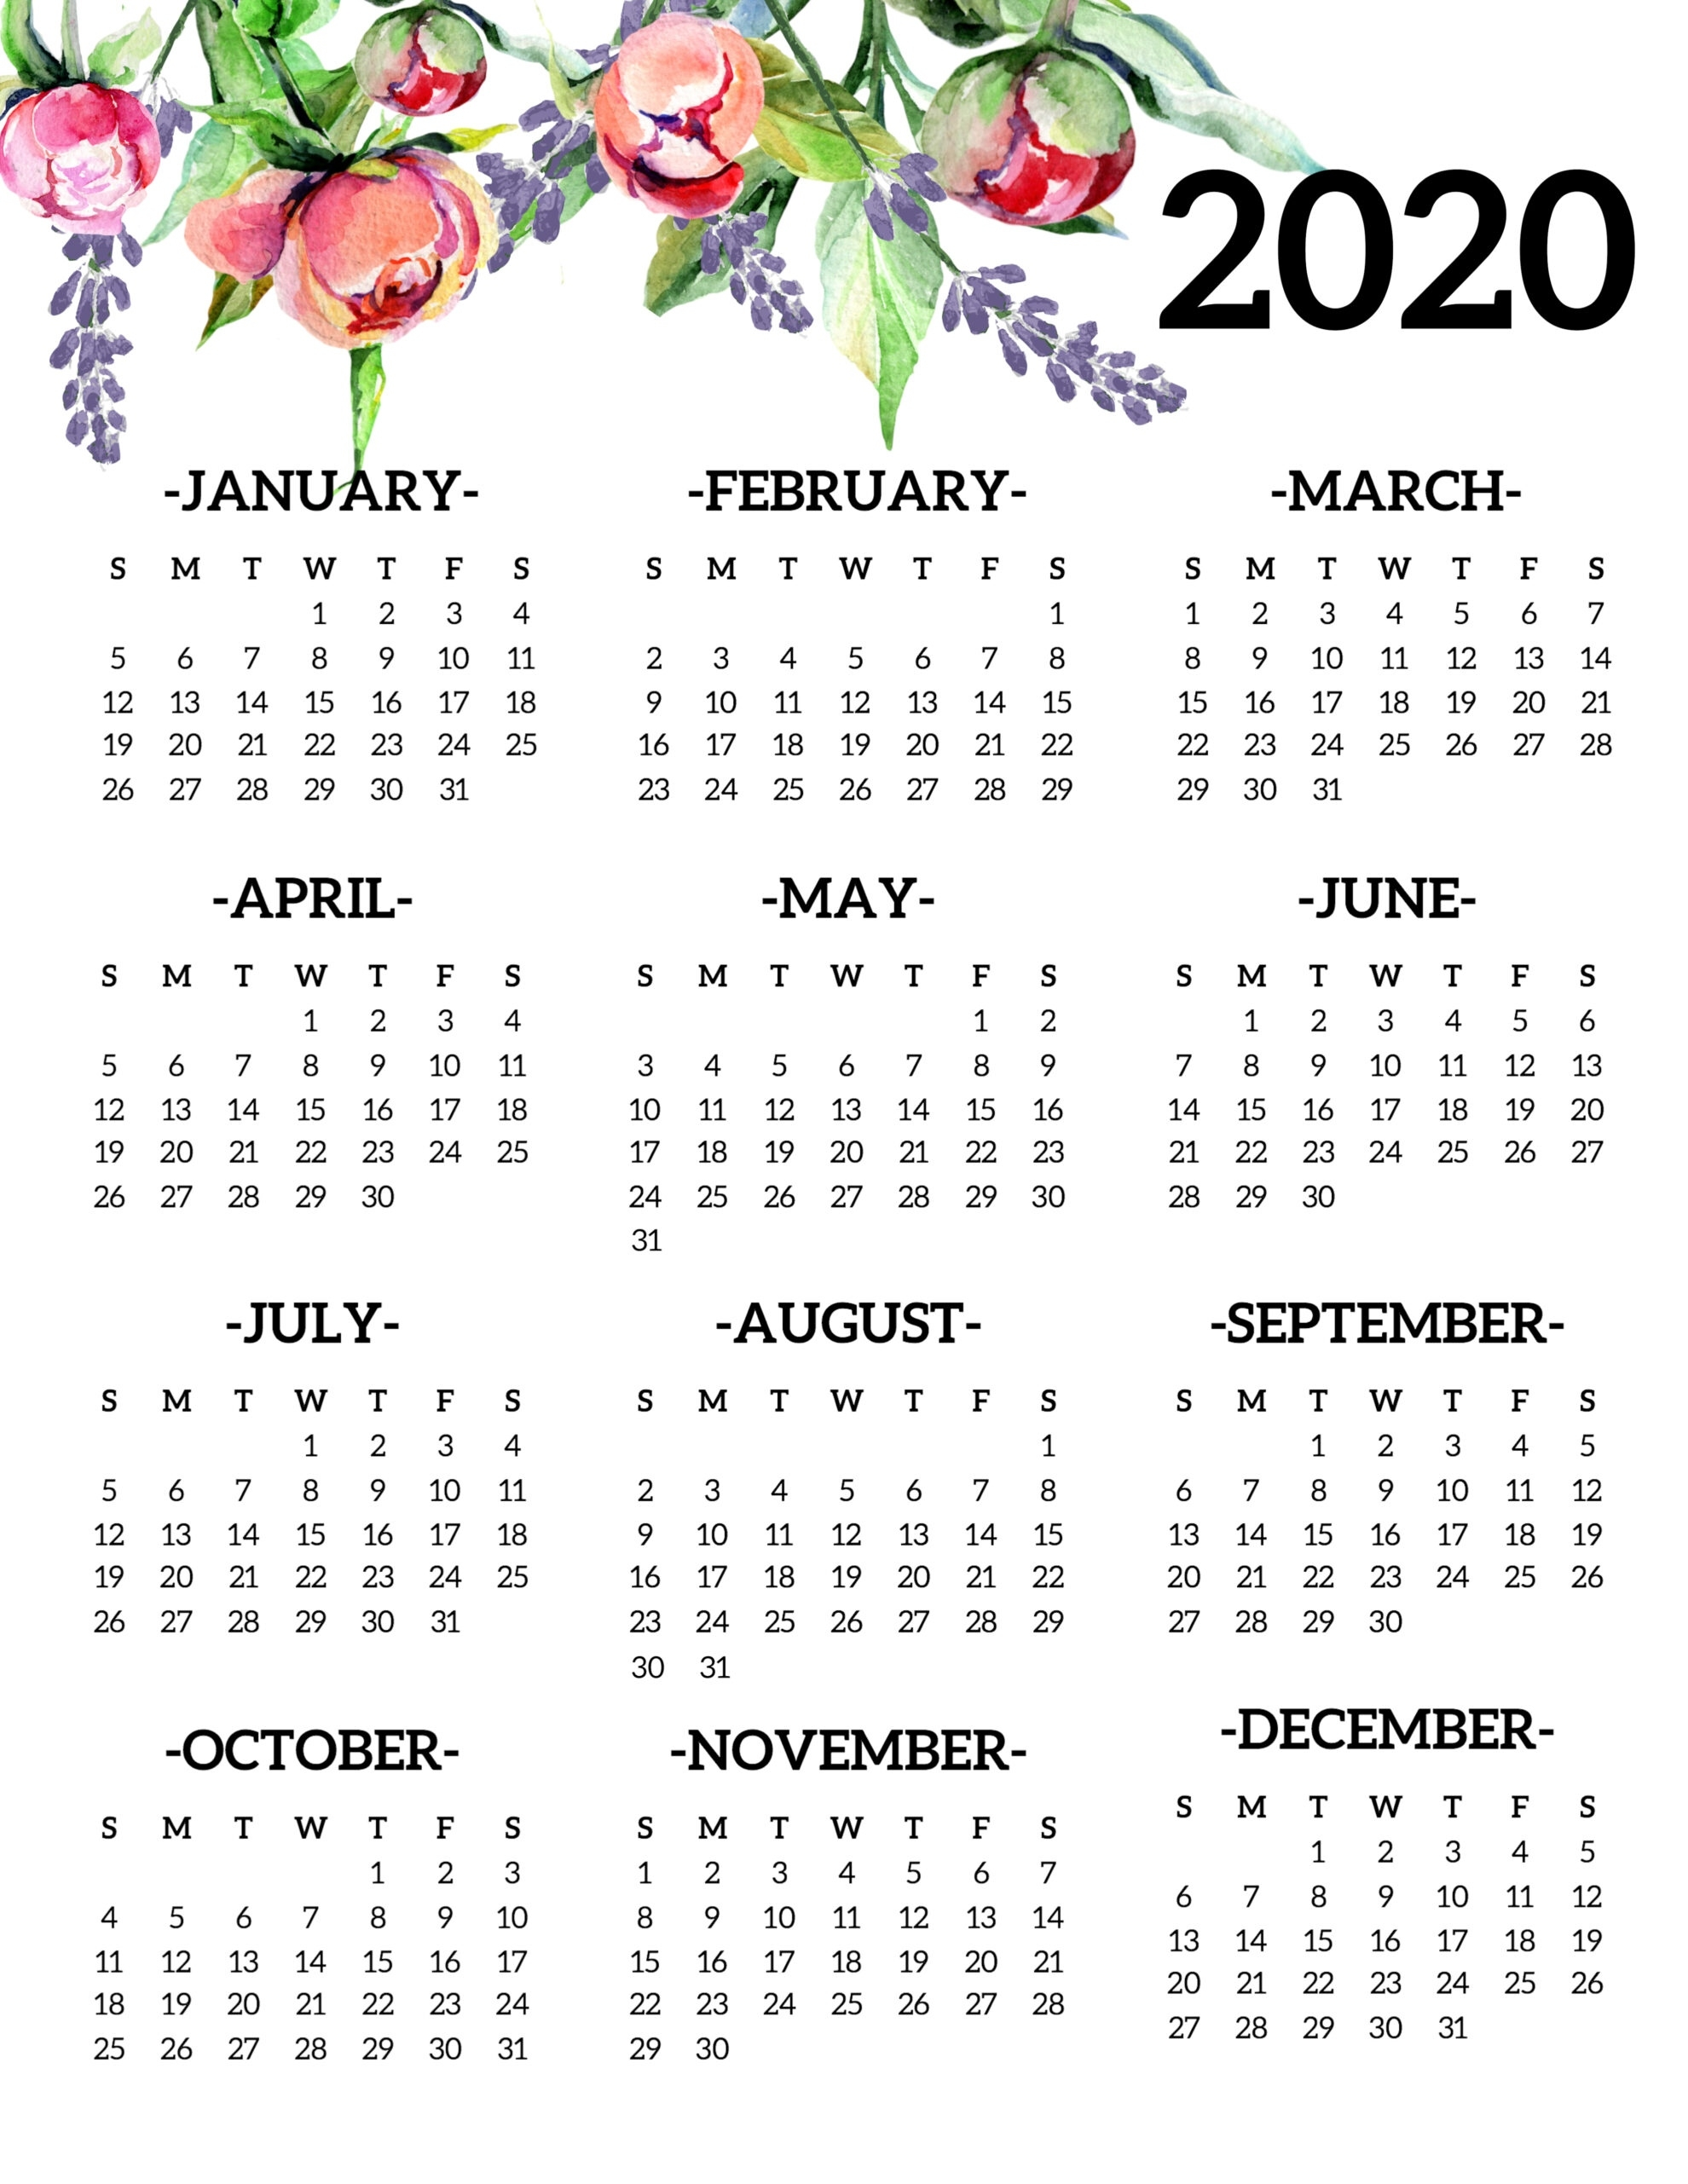 Free Printable 2020 Calendar Yearly One Page Floral - Paper Perky Year Calendar 2020 Printable